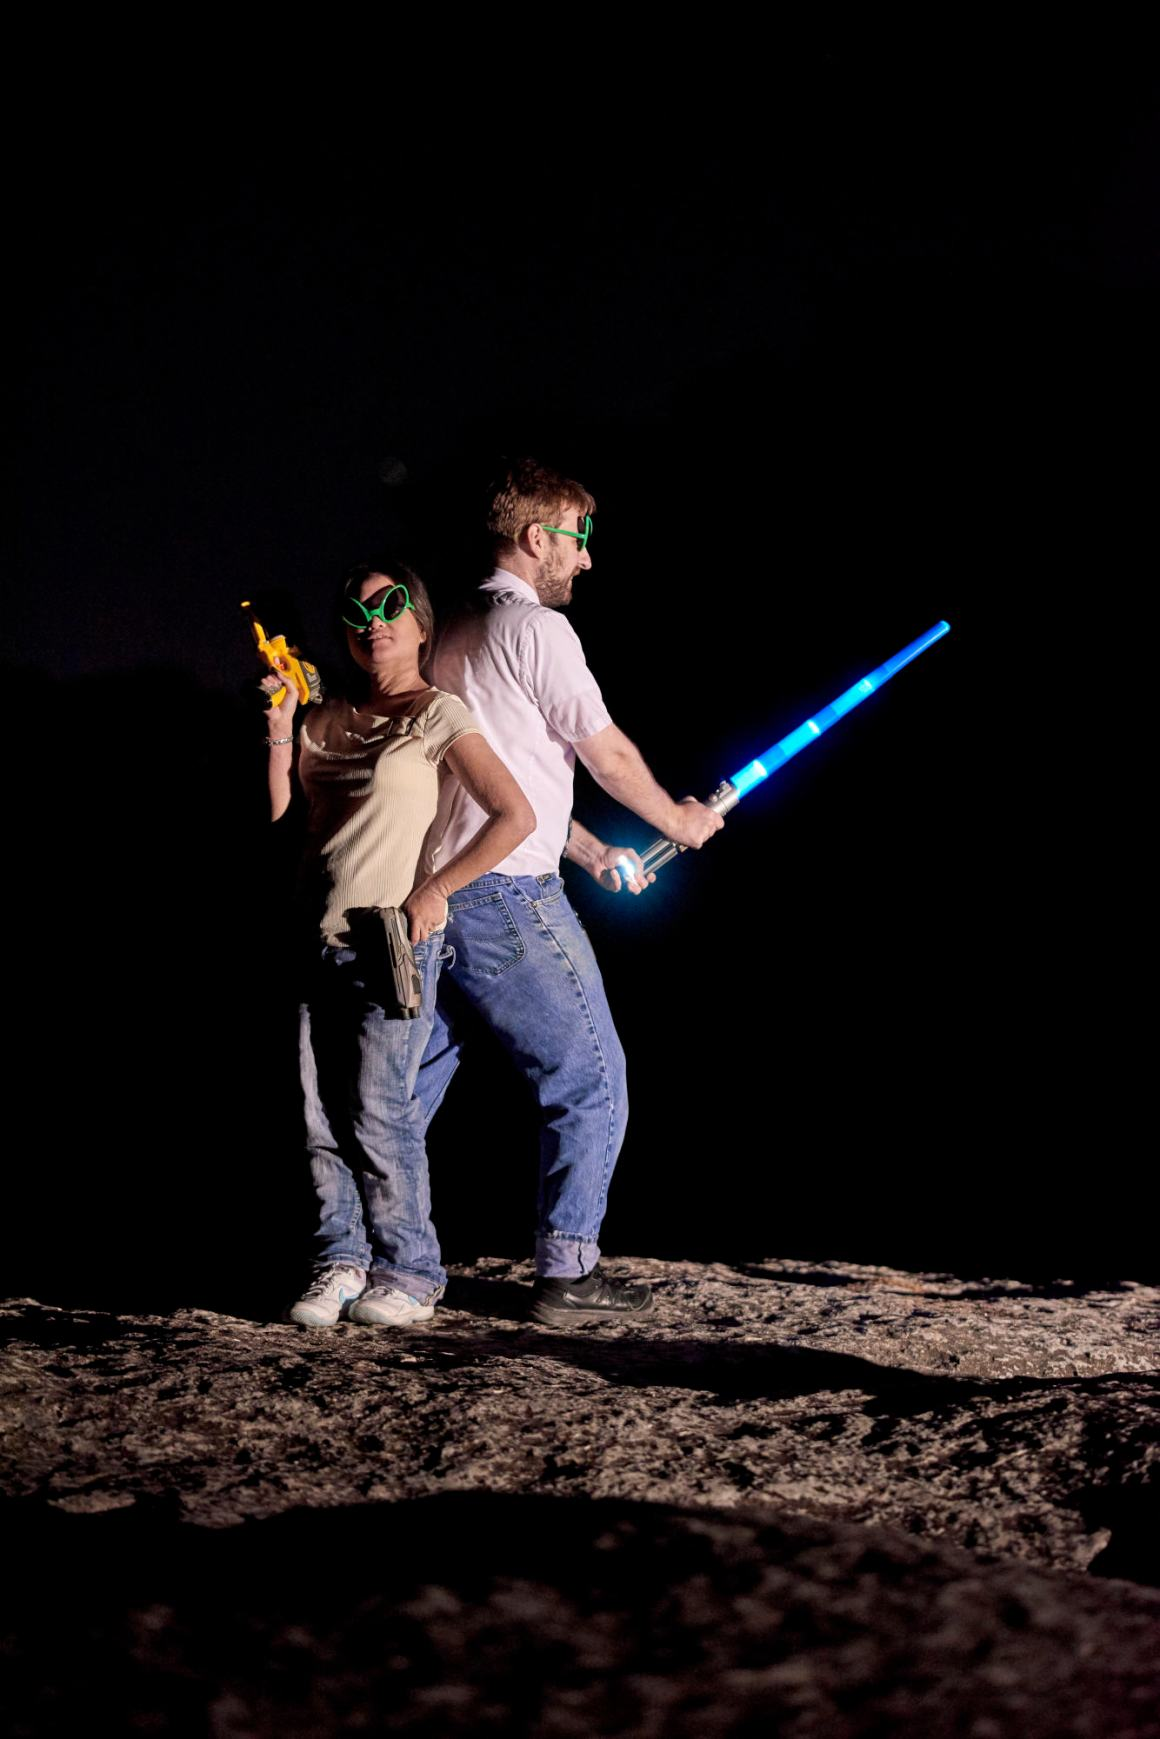 Fun geeky star wars inspired fun during an engagement session under the stars. James holds a toy light-saber and Nicole has a prop blaster.